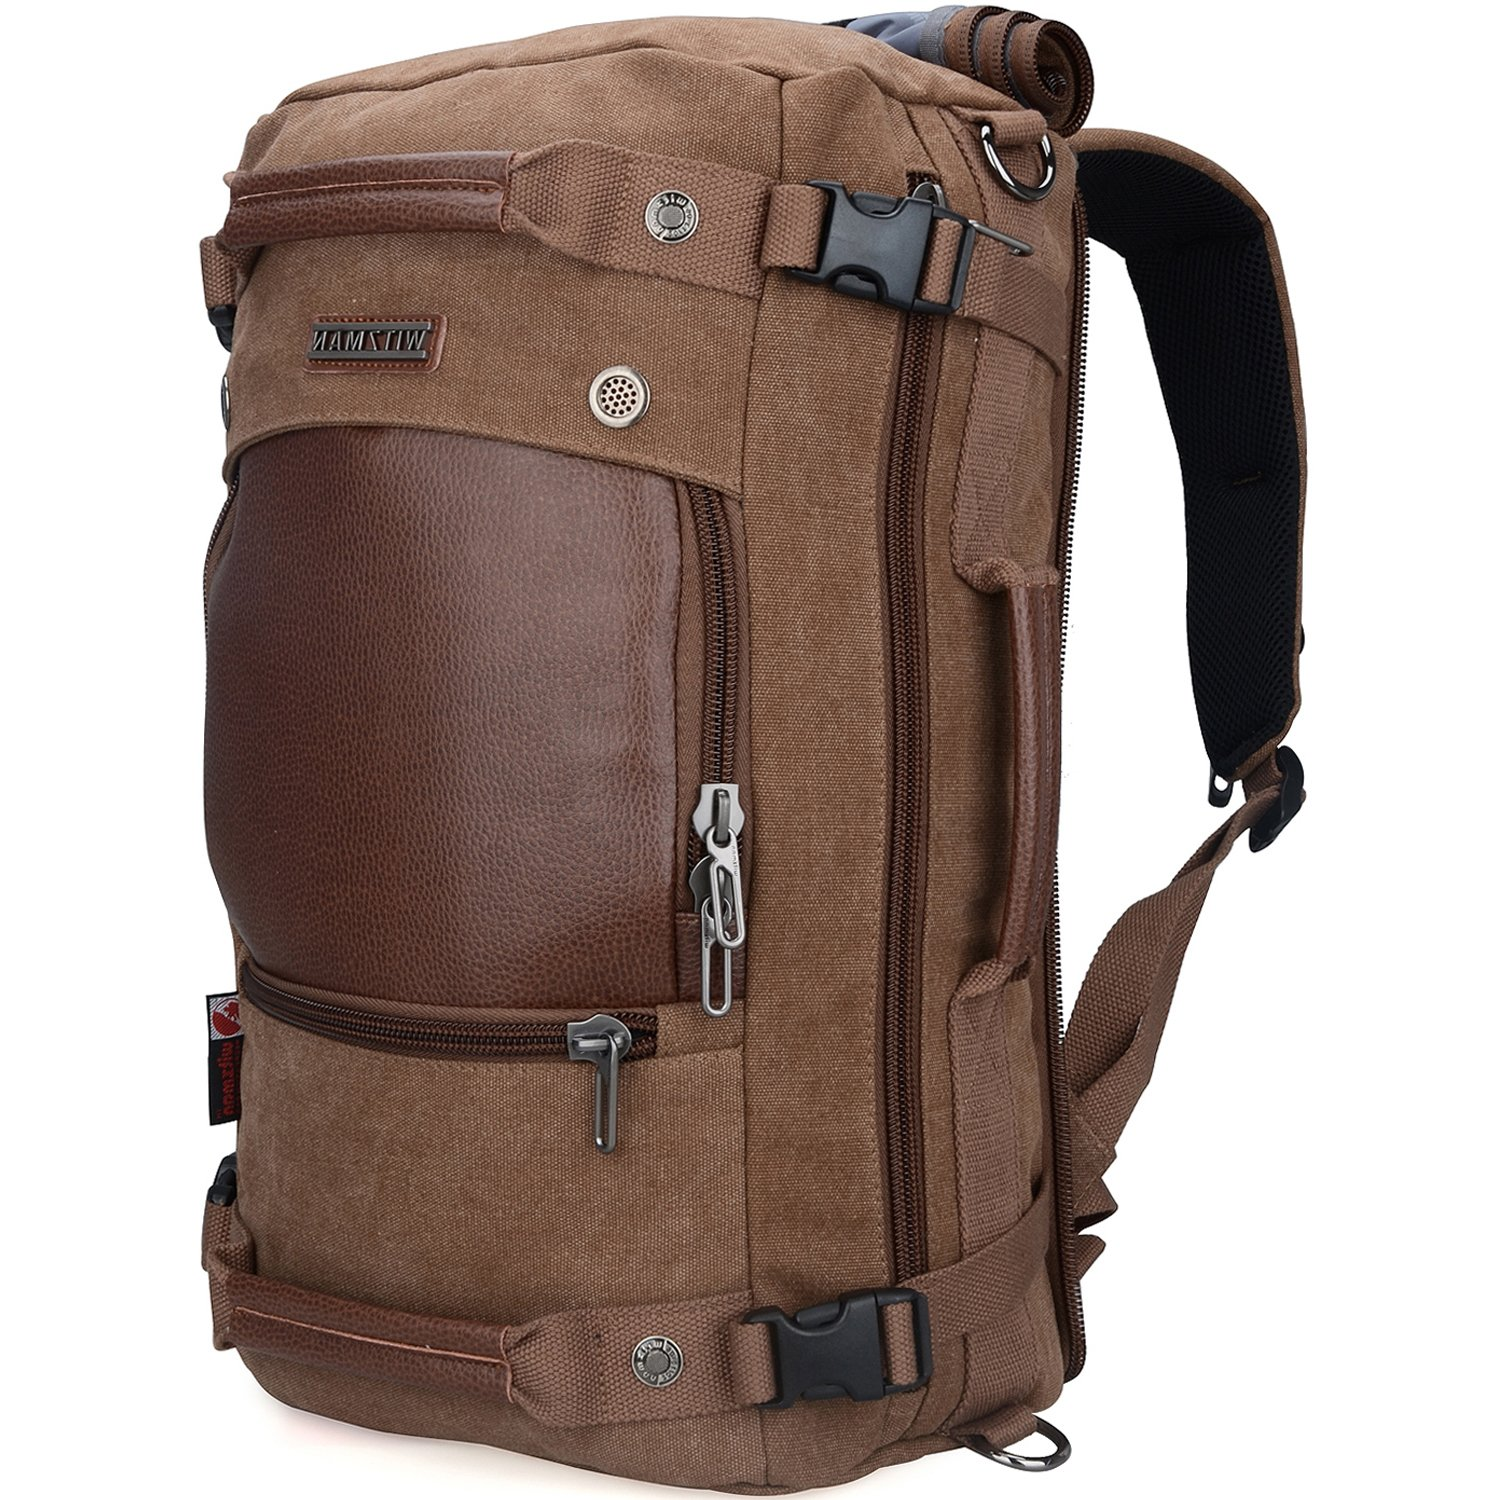 WITZMAN Men Travel Backpack Canvas Rucksack Vintage Duffel Bag A2021 (21 inch Brown)